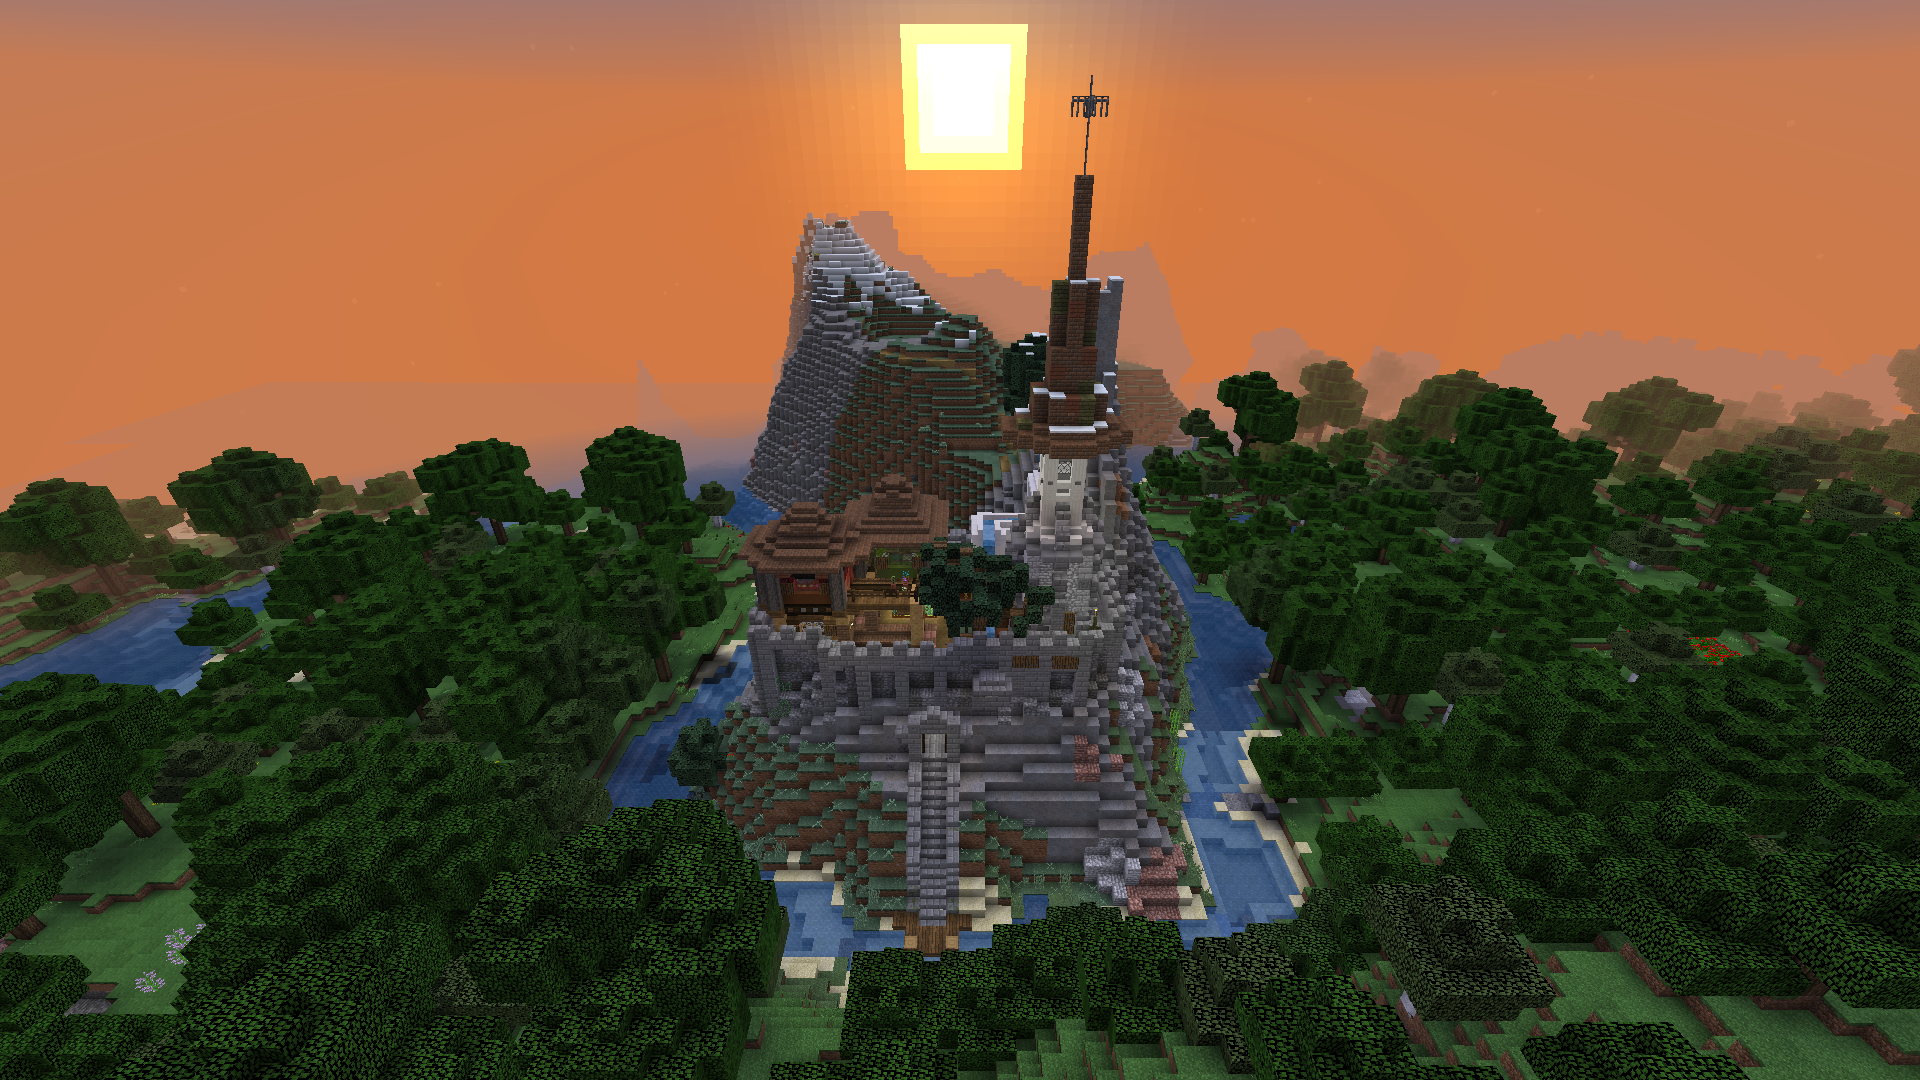 Build complete in sunset